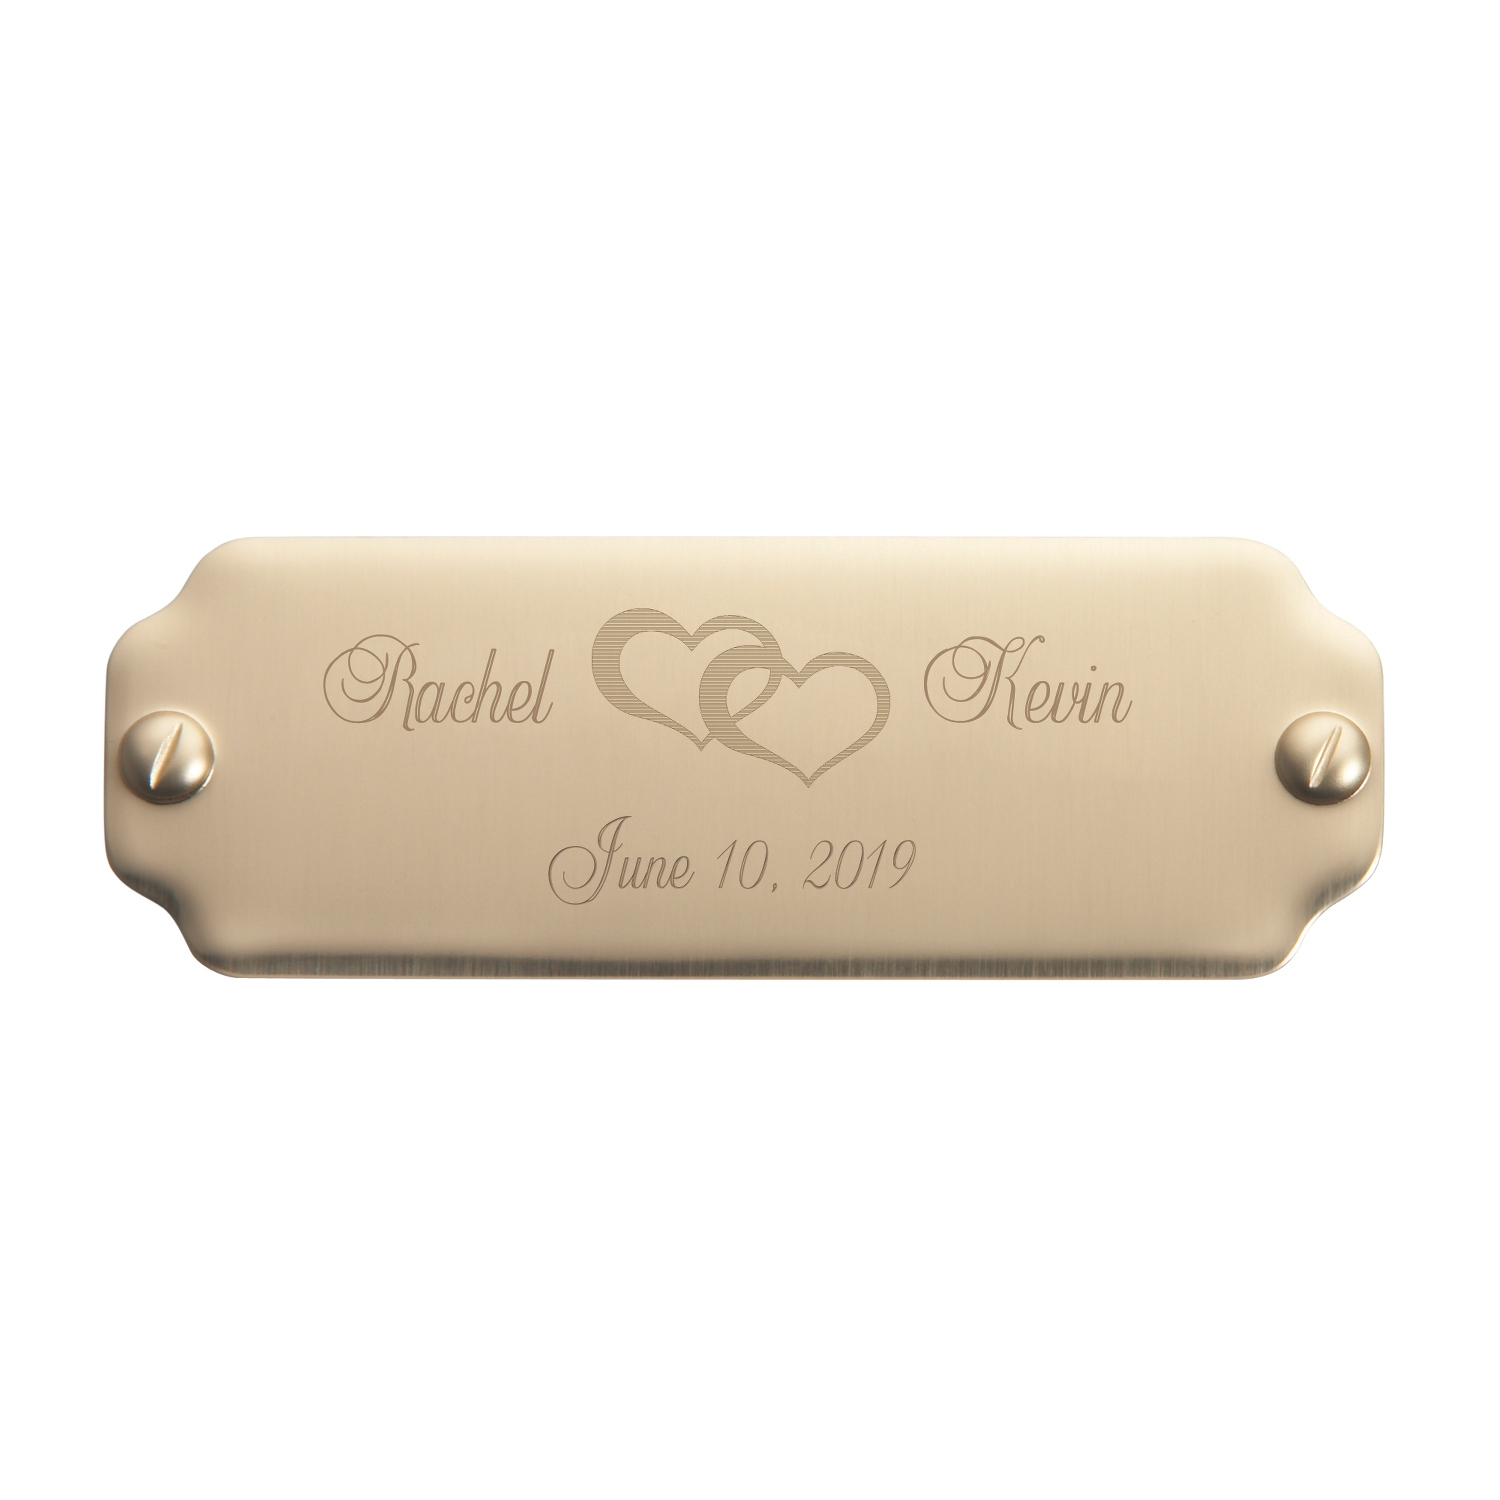 7 8 x 2 1 2 name plate with imitation screw design - Brass name plate designs for home ...